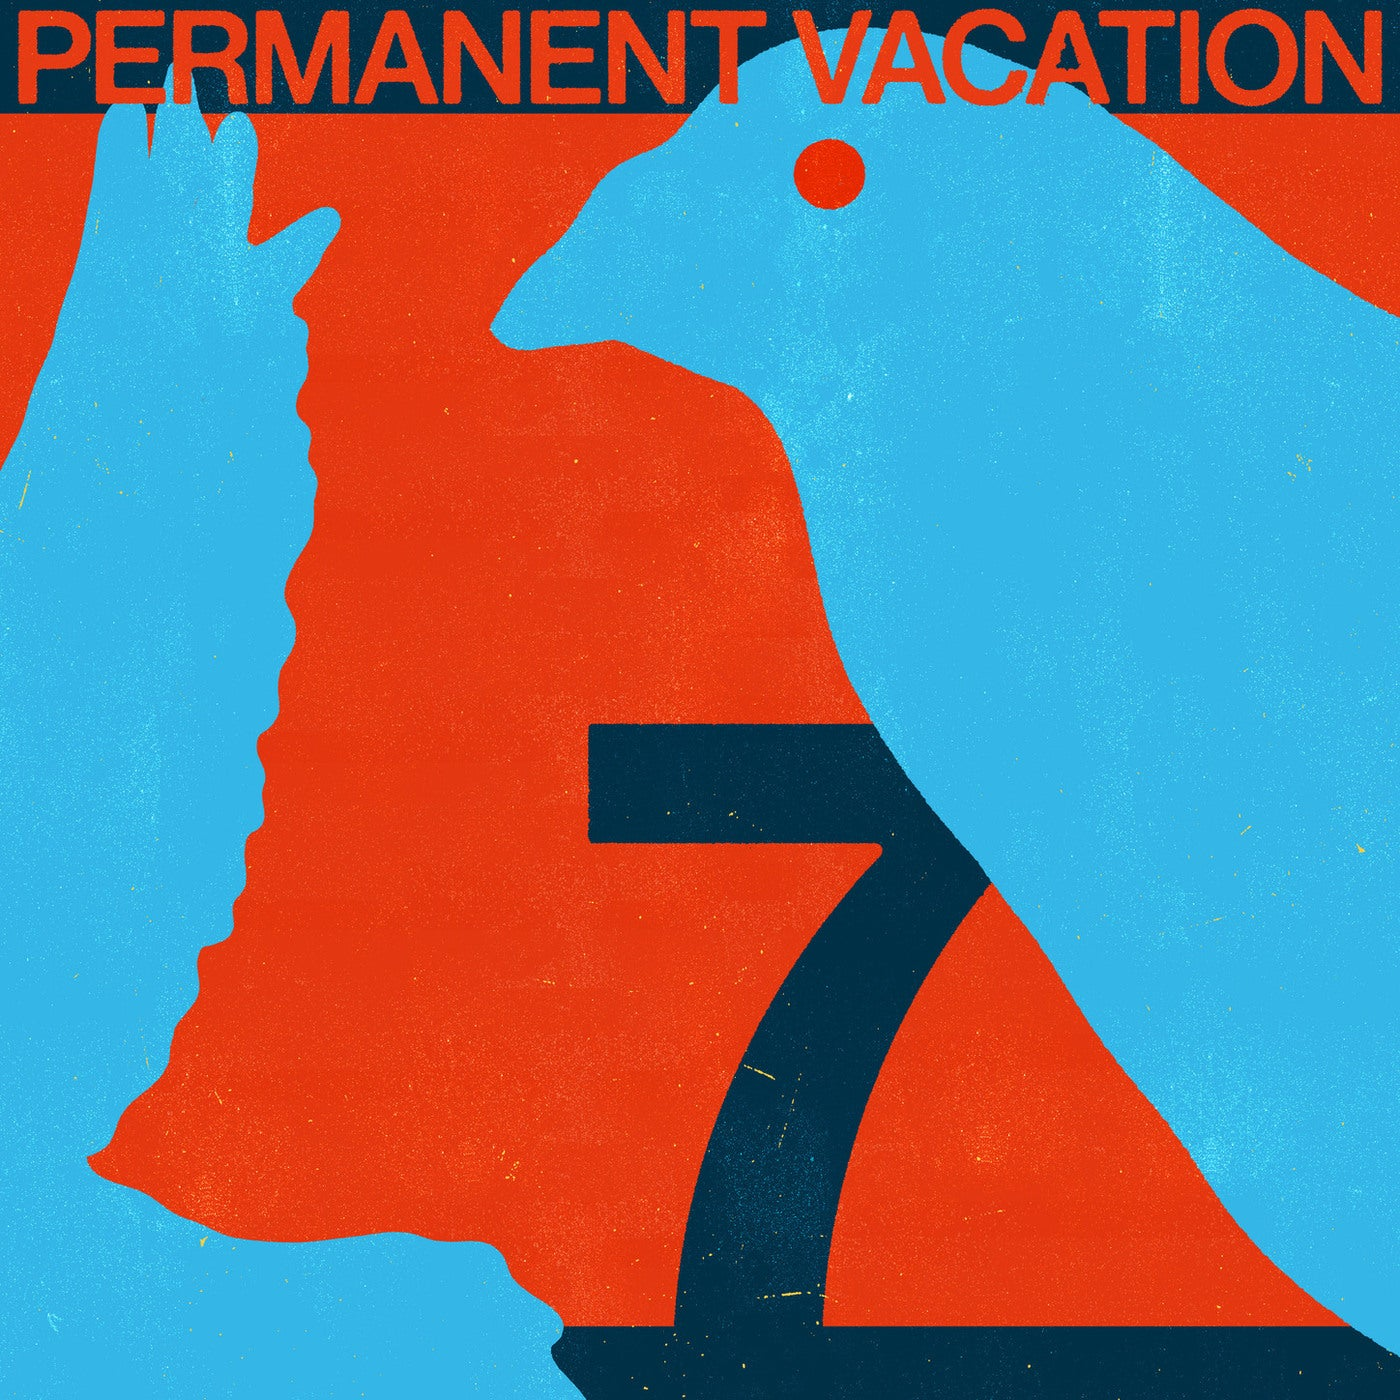 Download Permanent Vacation 7 on Electrobuzz